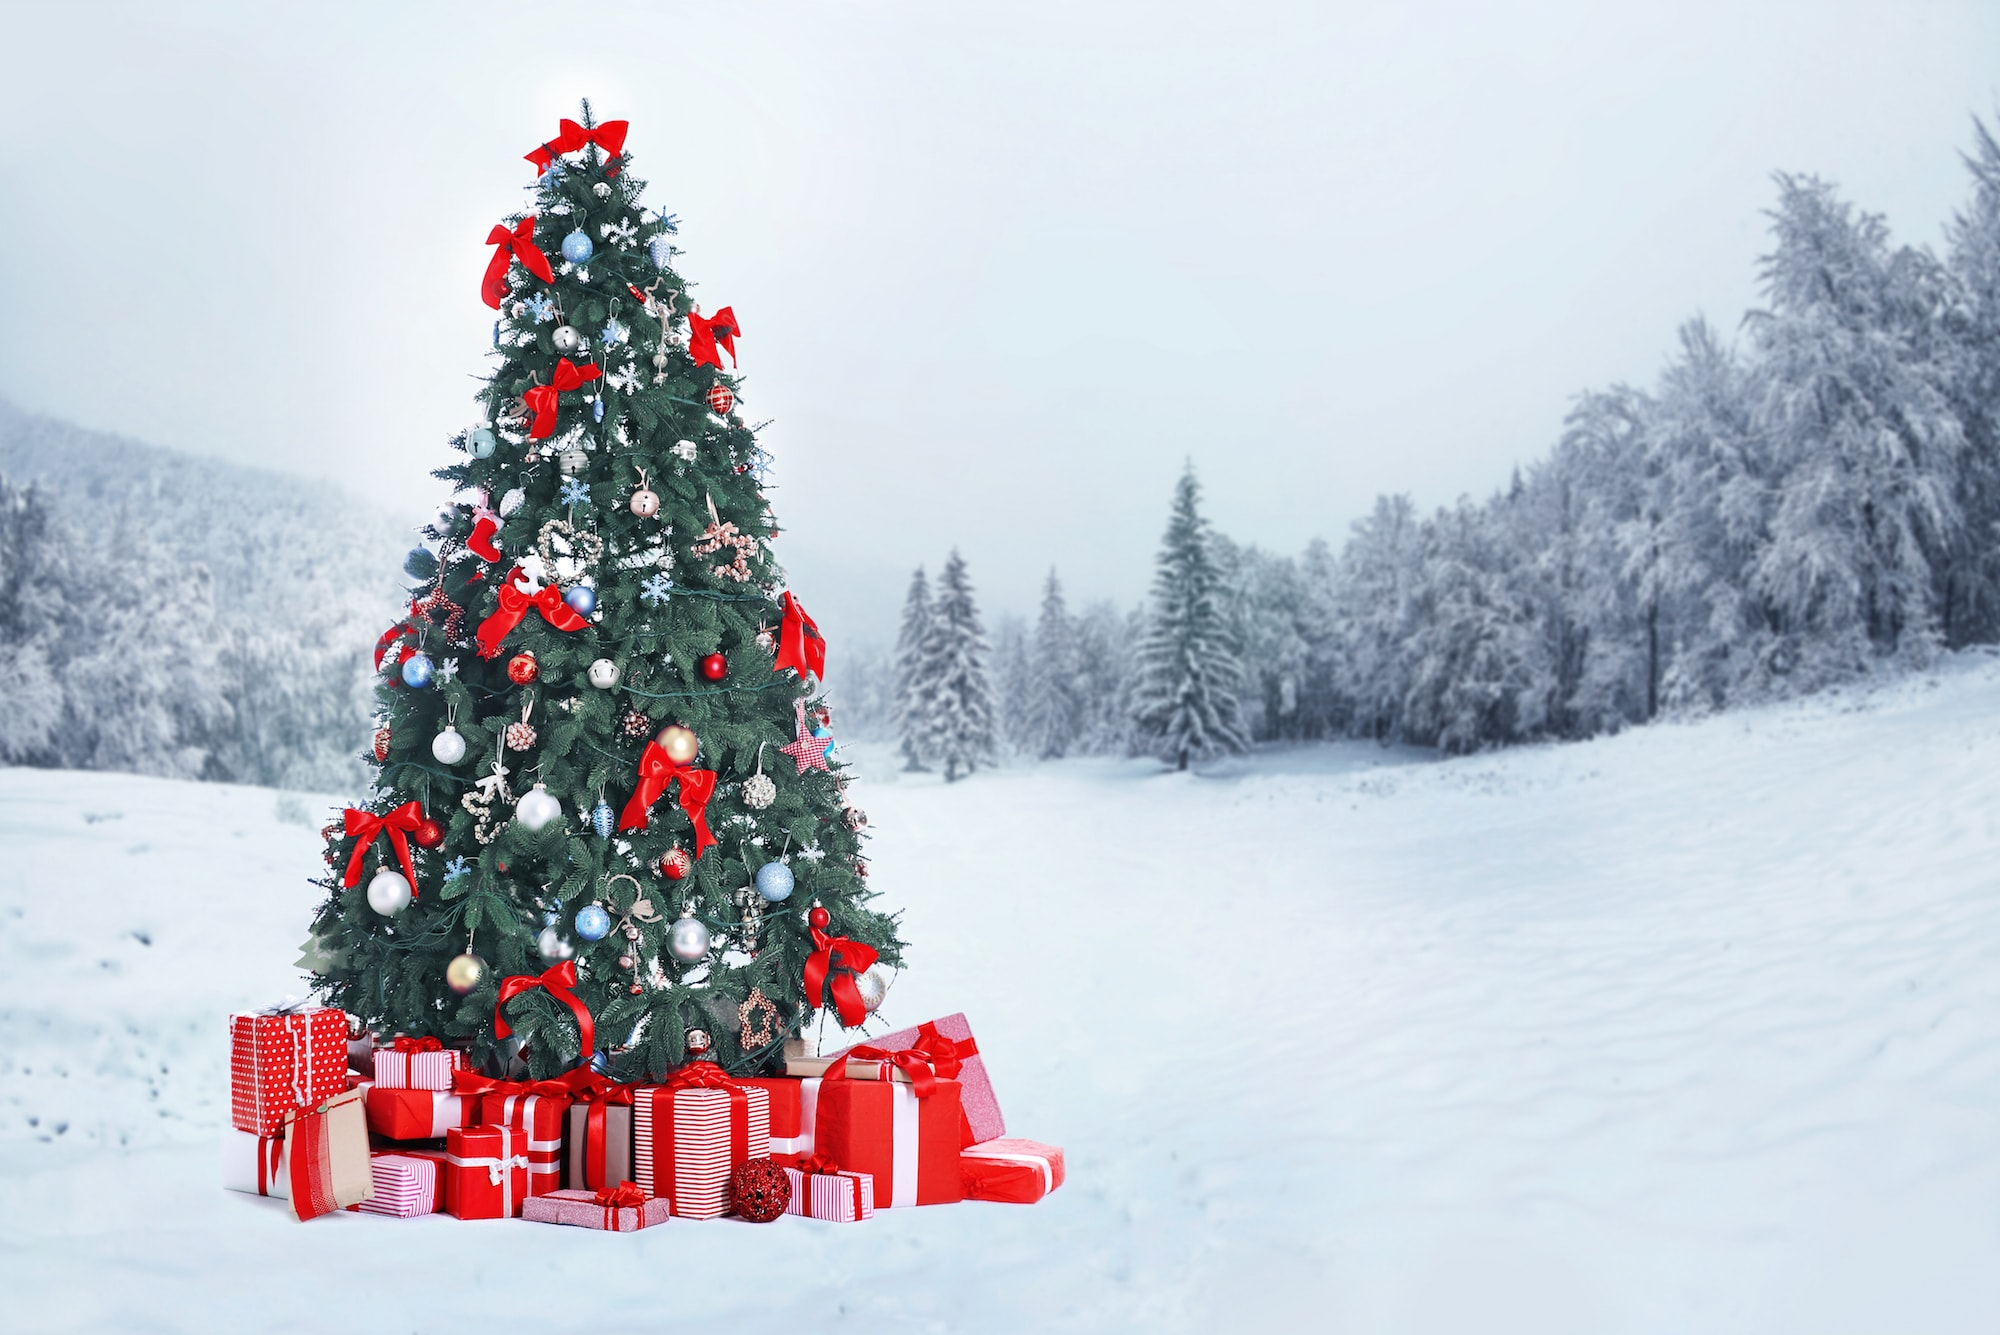 12 days of christmas fun and reflection